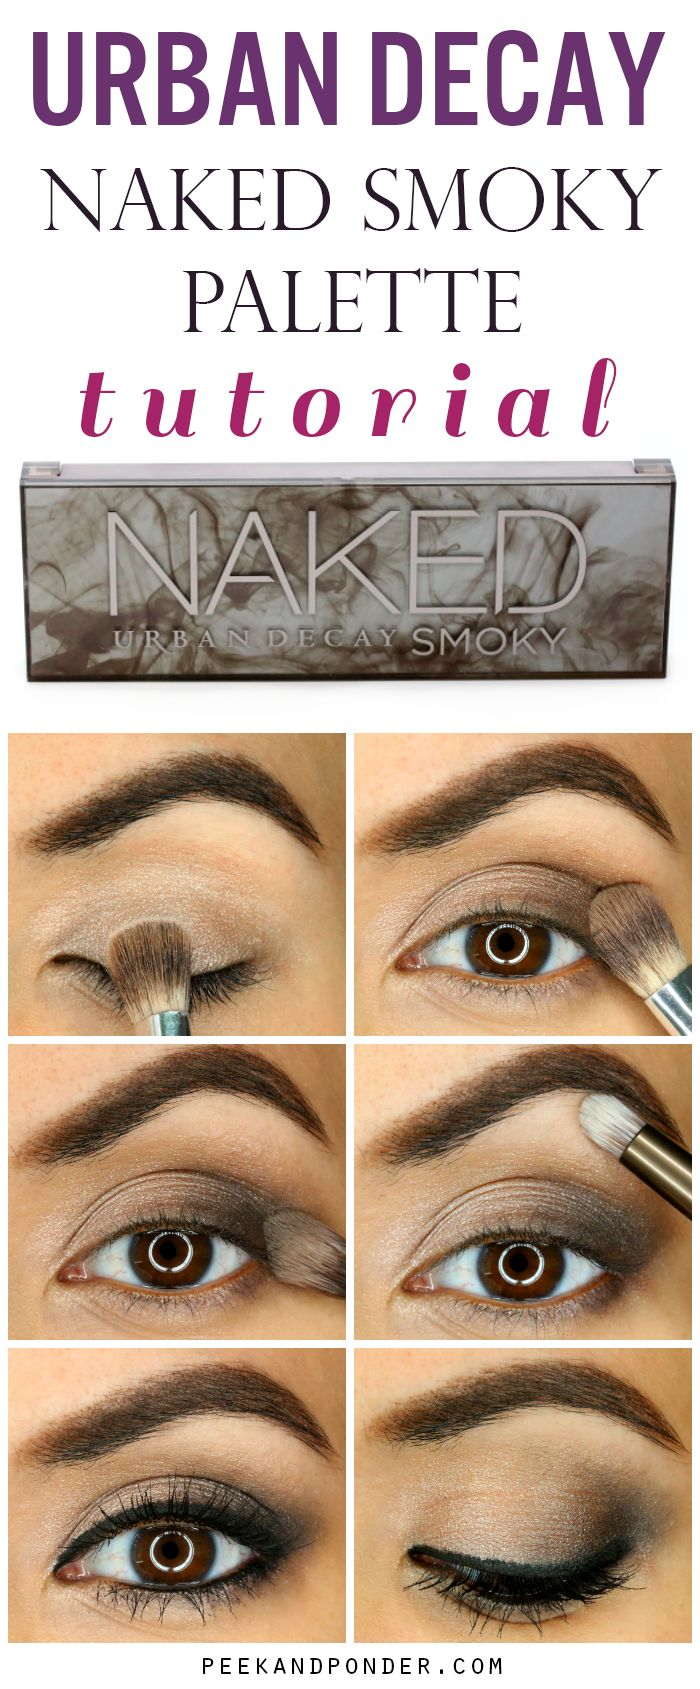 Awesome and easy smoky eye with the Urban Decay Naked Smoky palette! I've got to get this palette!